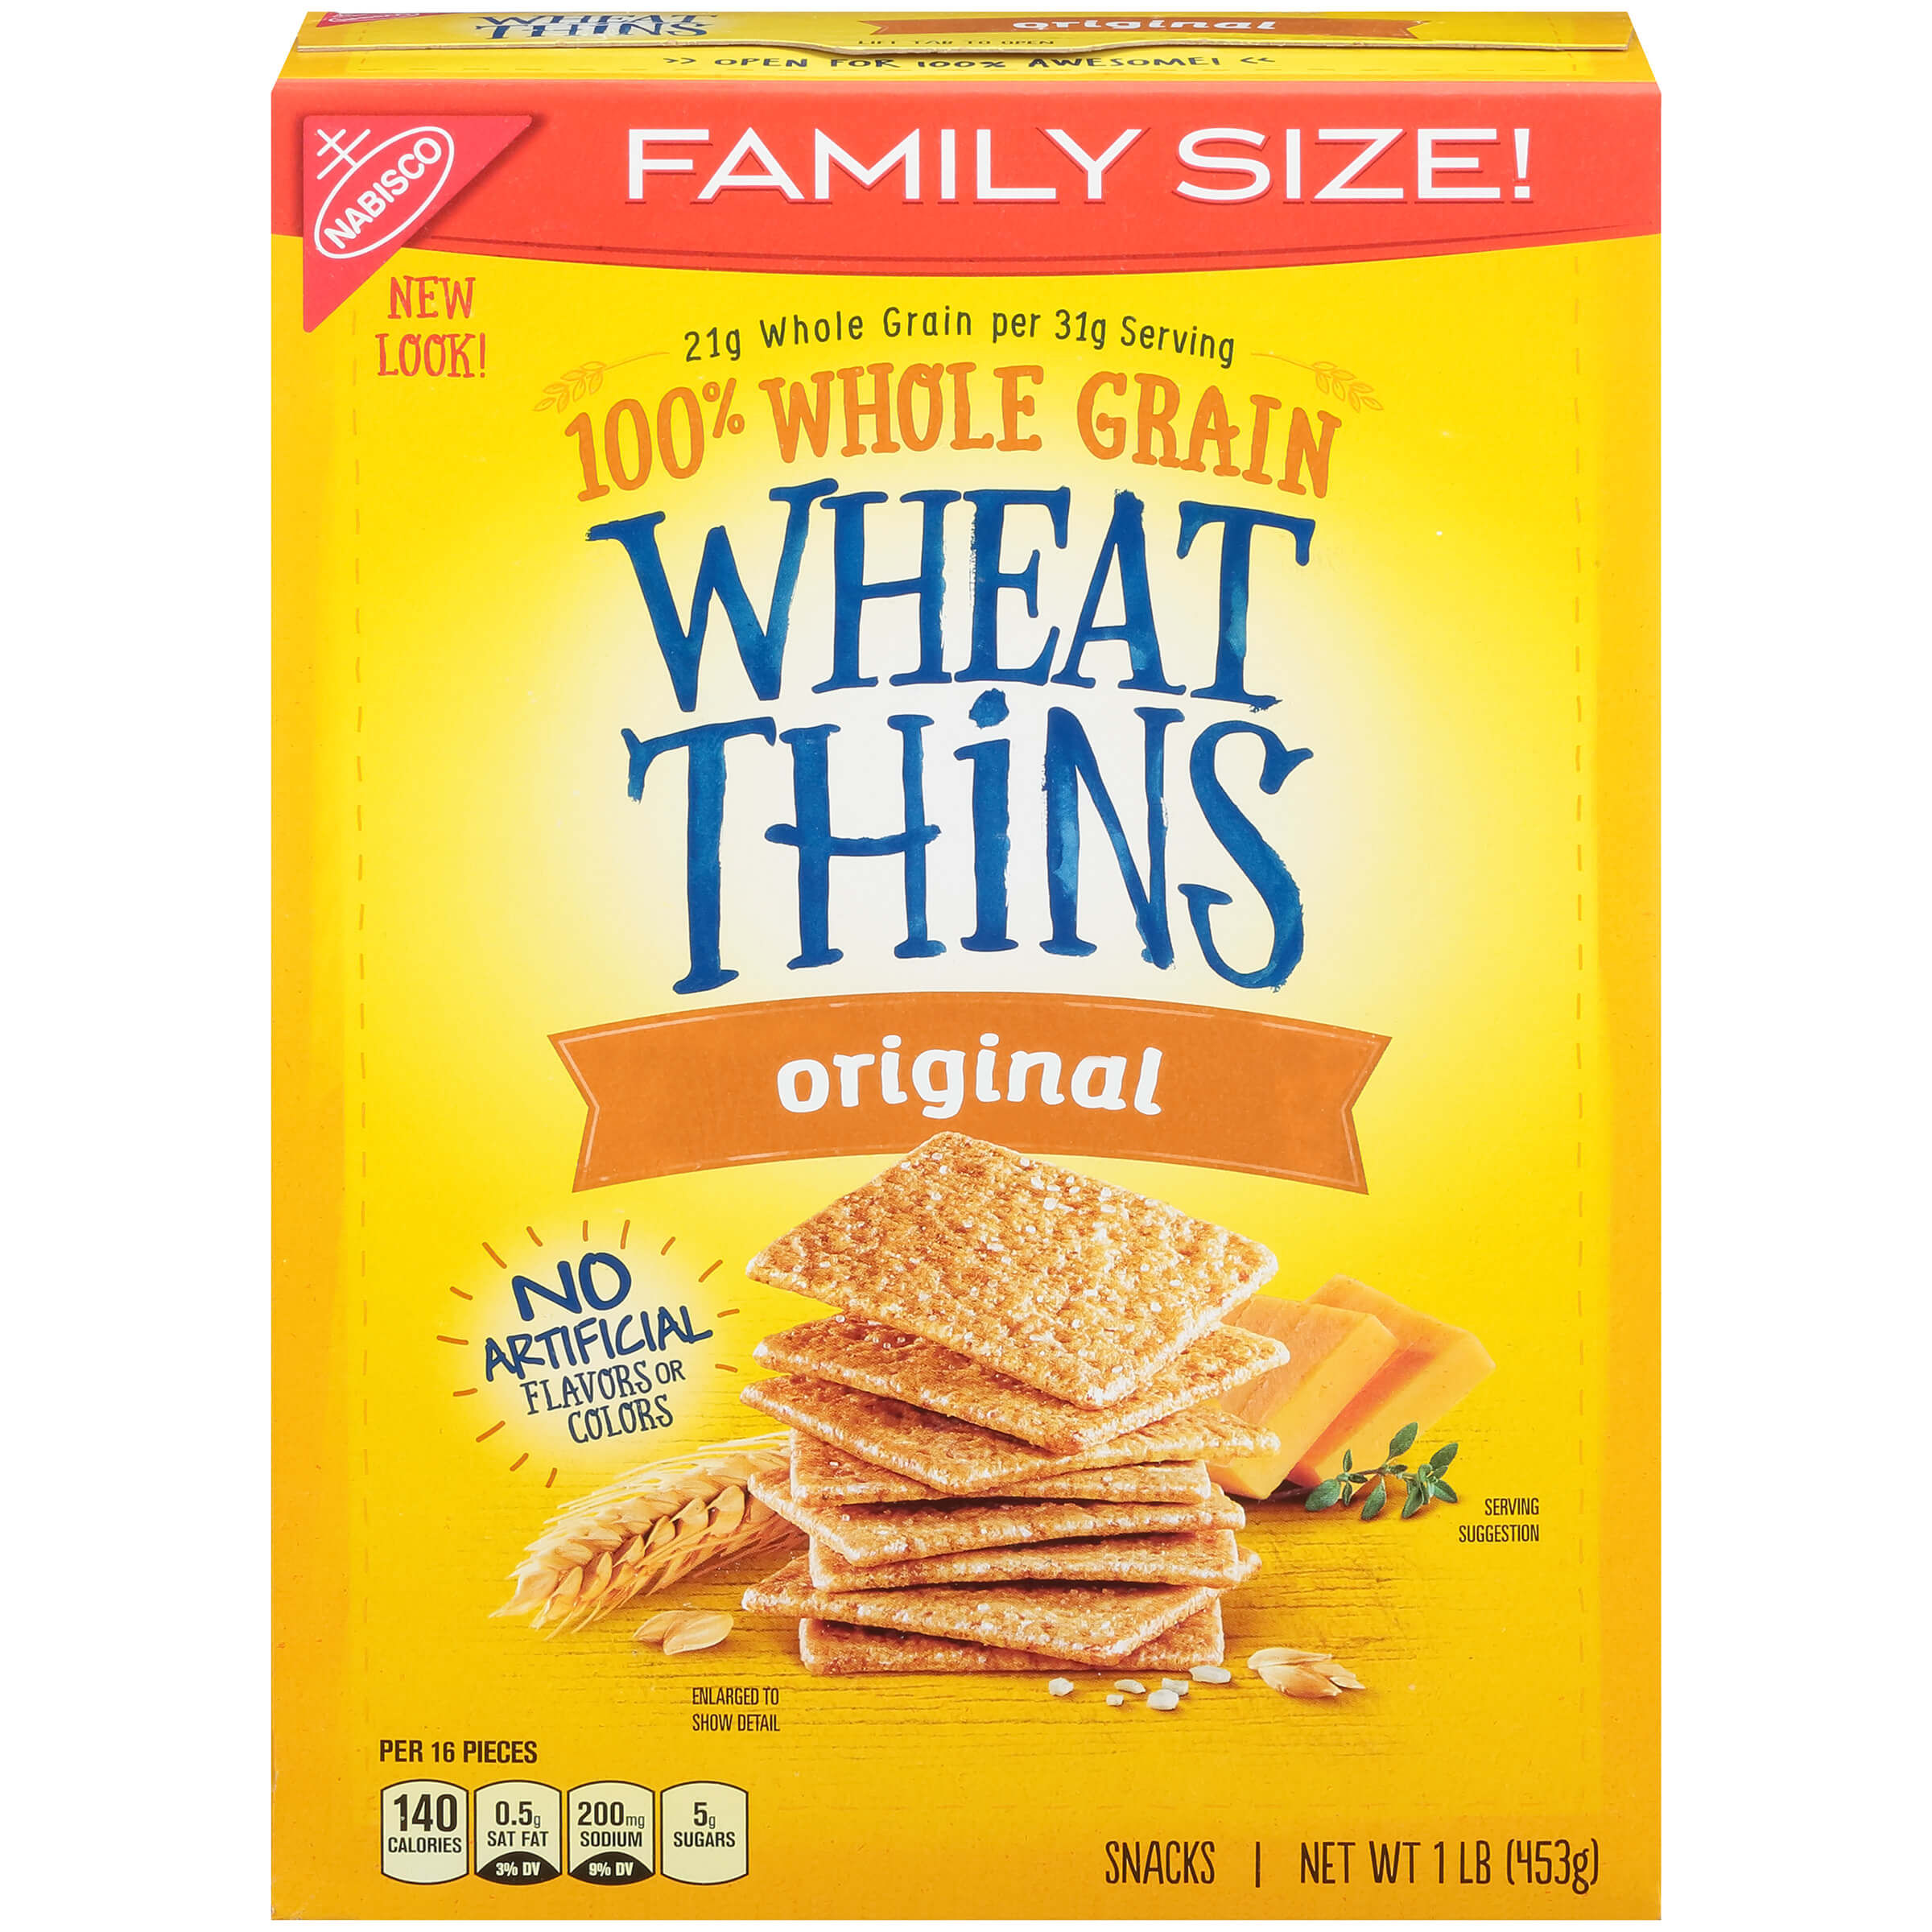 wheat thins packaging